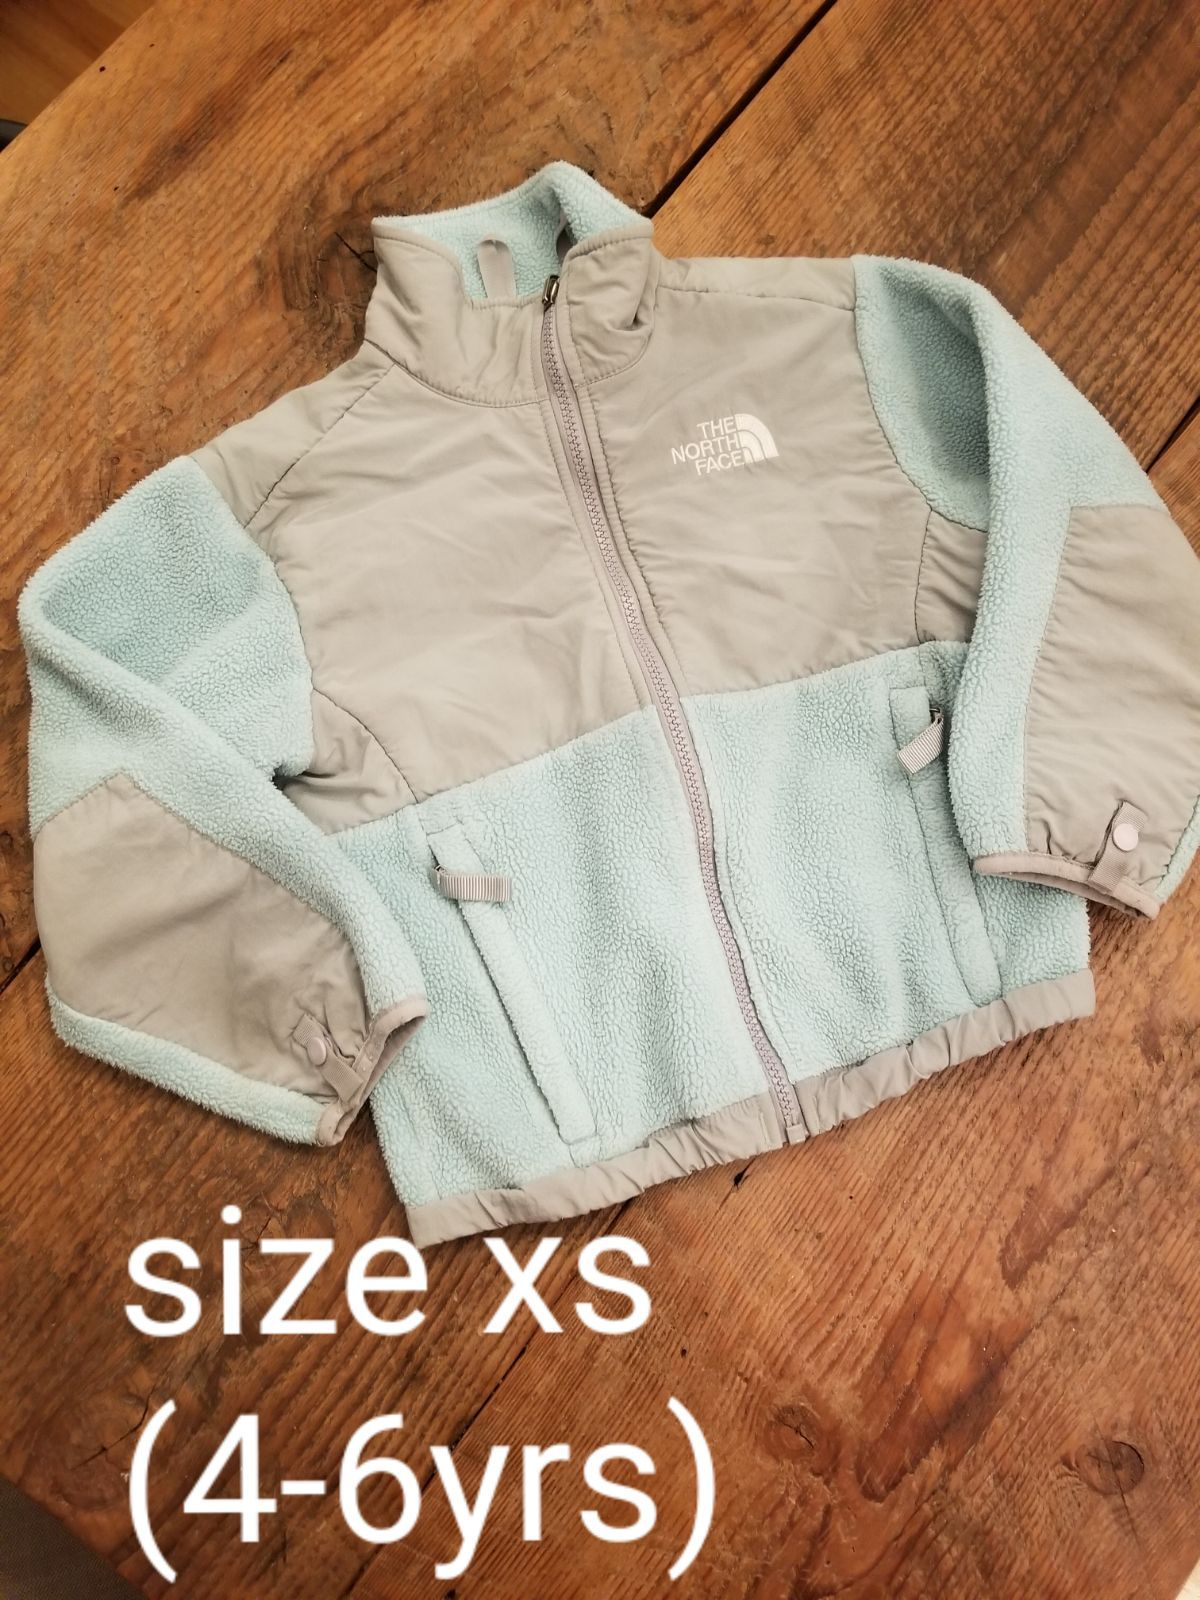 Baby Blue And Grey Northface Fleece Unique And Nice Jacket Comes From A Smoke Pet Free Home Jackets North Face Coat The North Face [ 1600 x 1200 Pixel ]